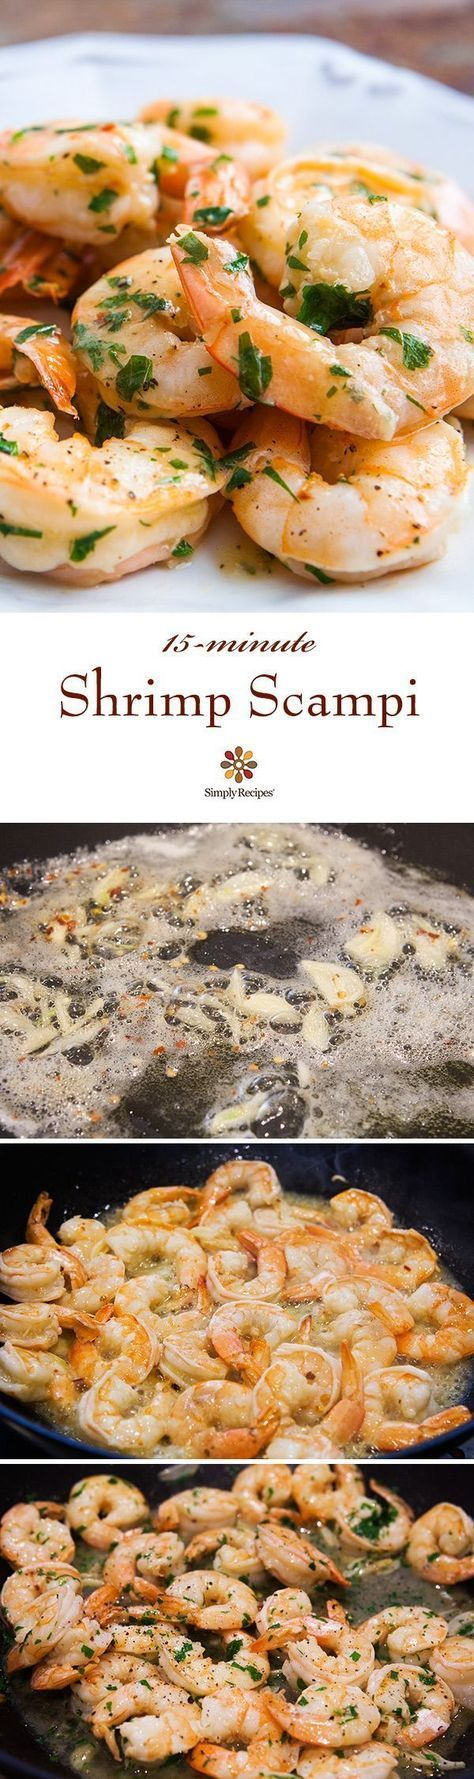 Shrimp Scampi ~ Quick and easy shrimp scampi, shrimp sautéed with garlic in butter, olive oil, and white wine, tossed with red pepper flakes and parsley. Takes only 15 minutes! On http://SimplyRecipes.com